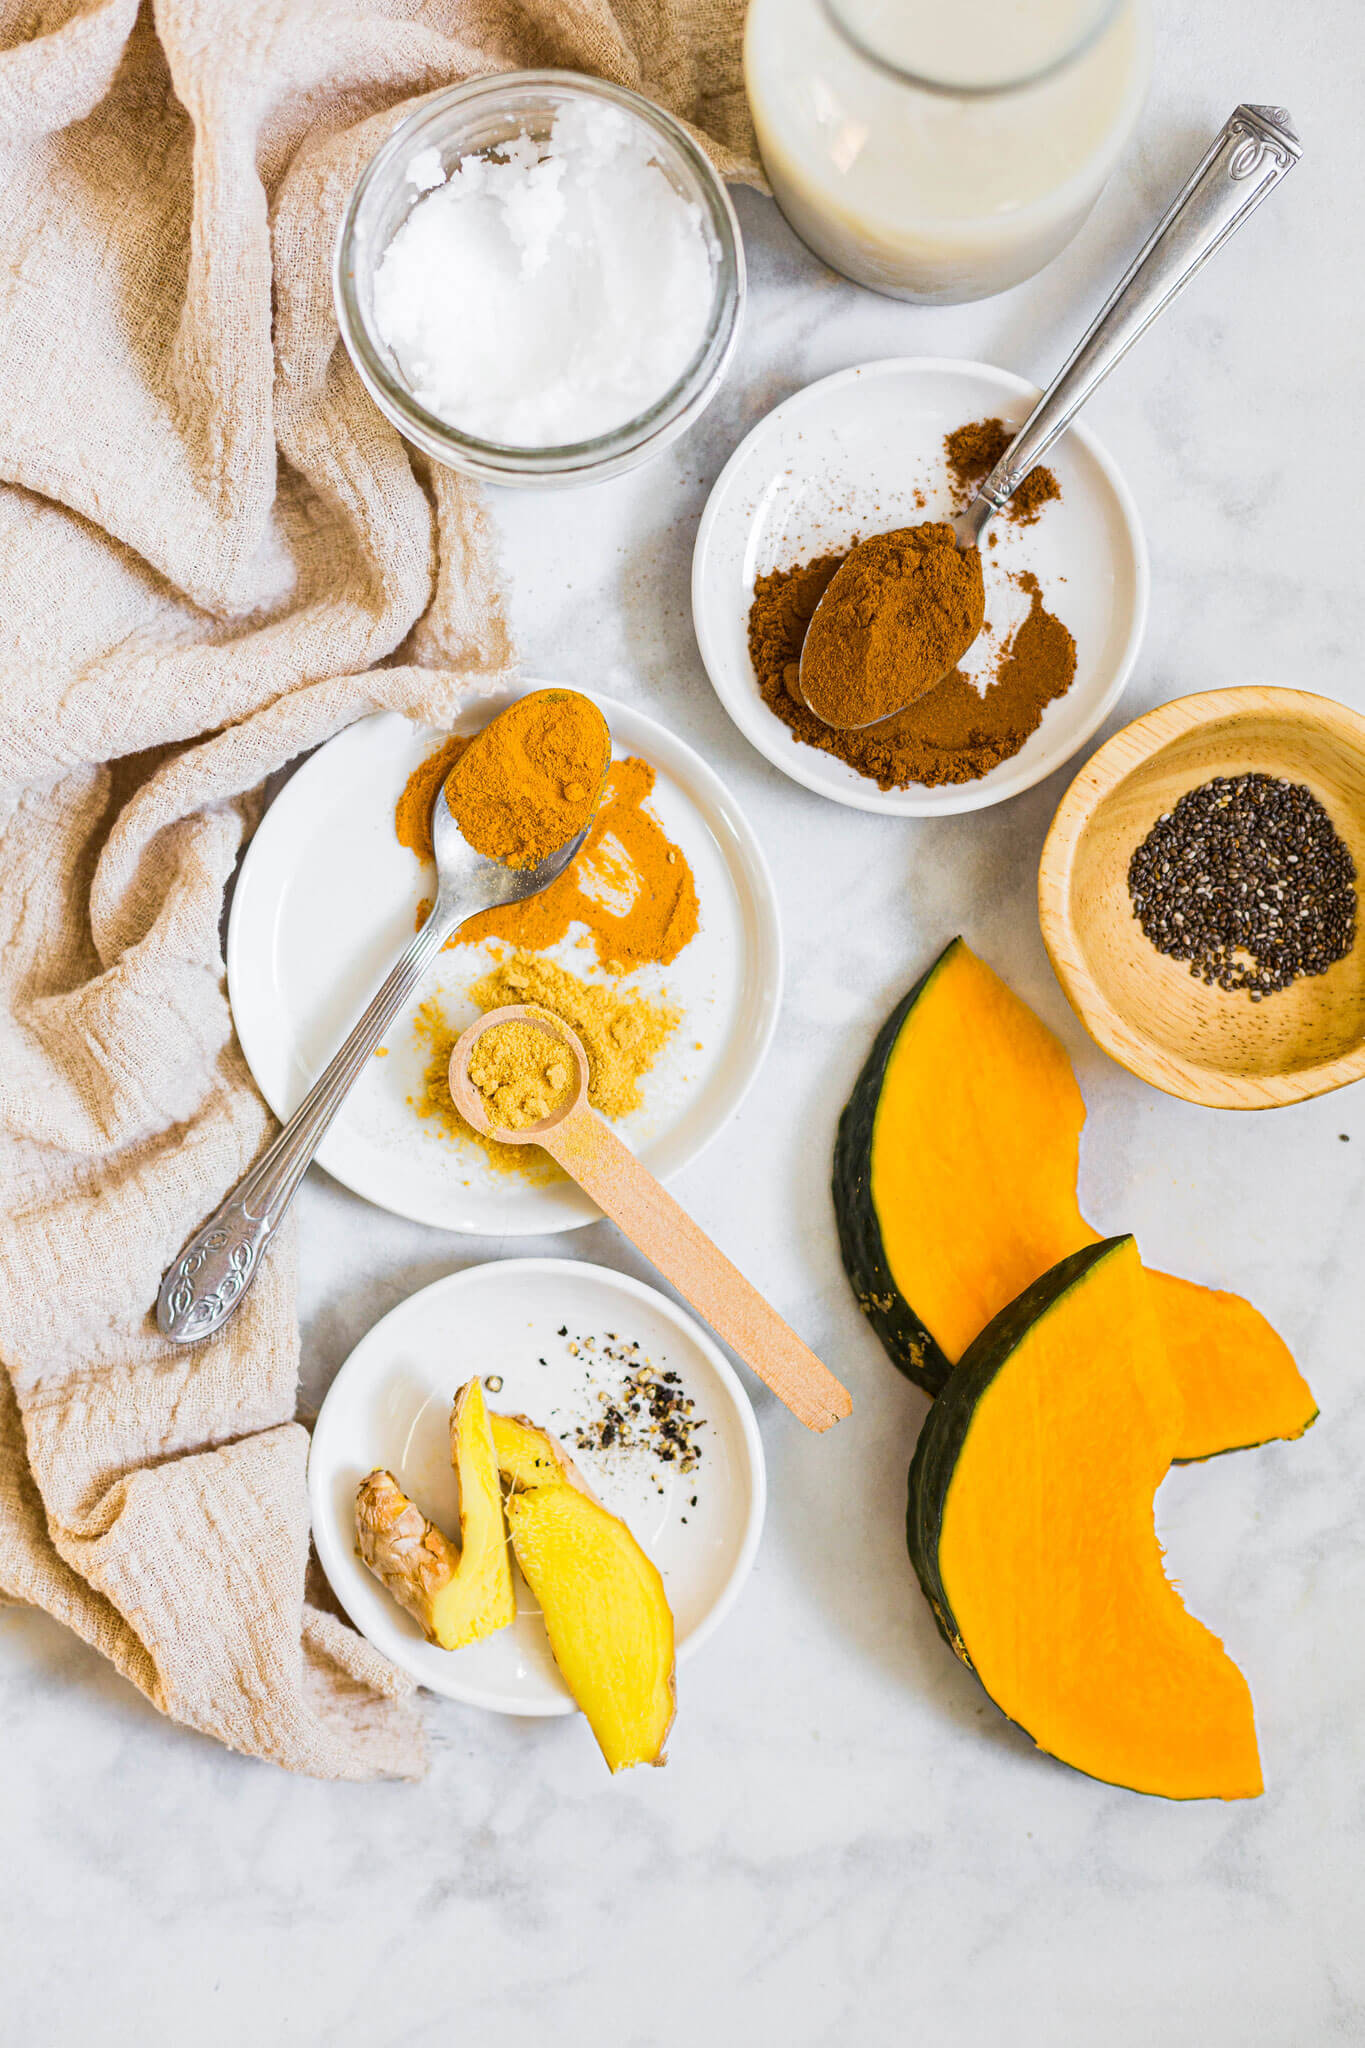 Healthy foods in fall that support the immune system